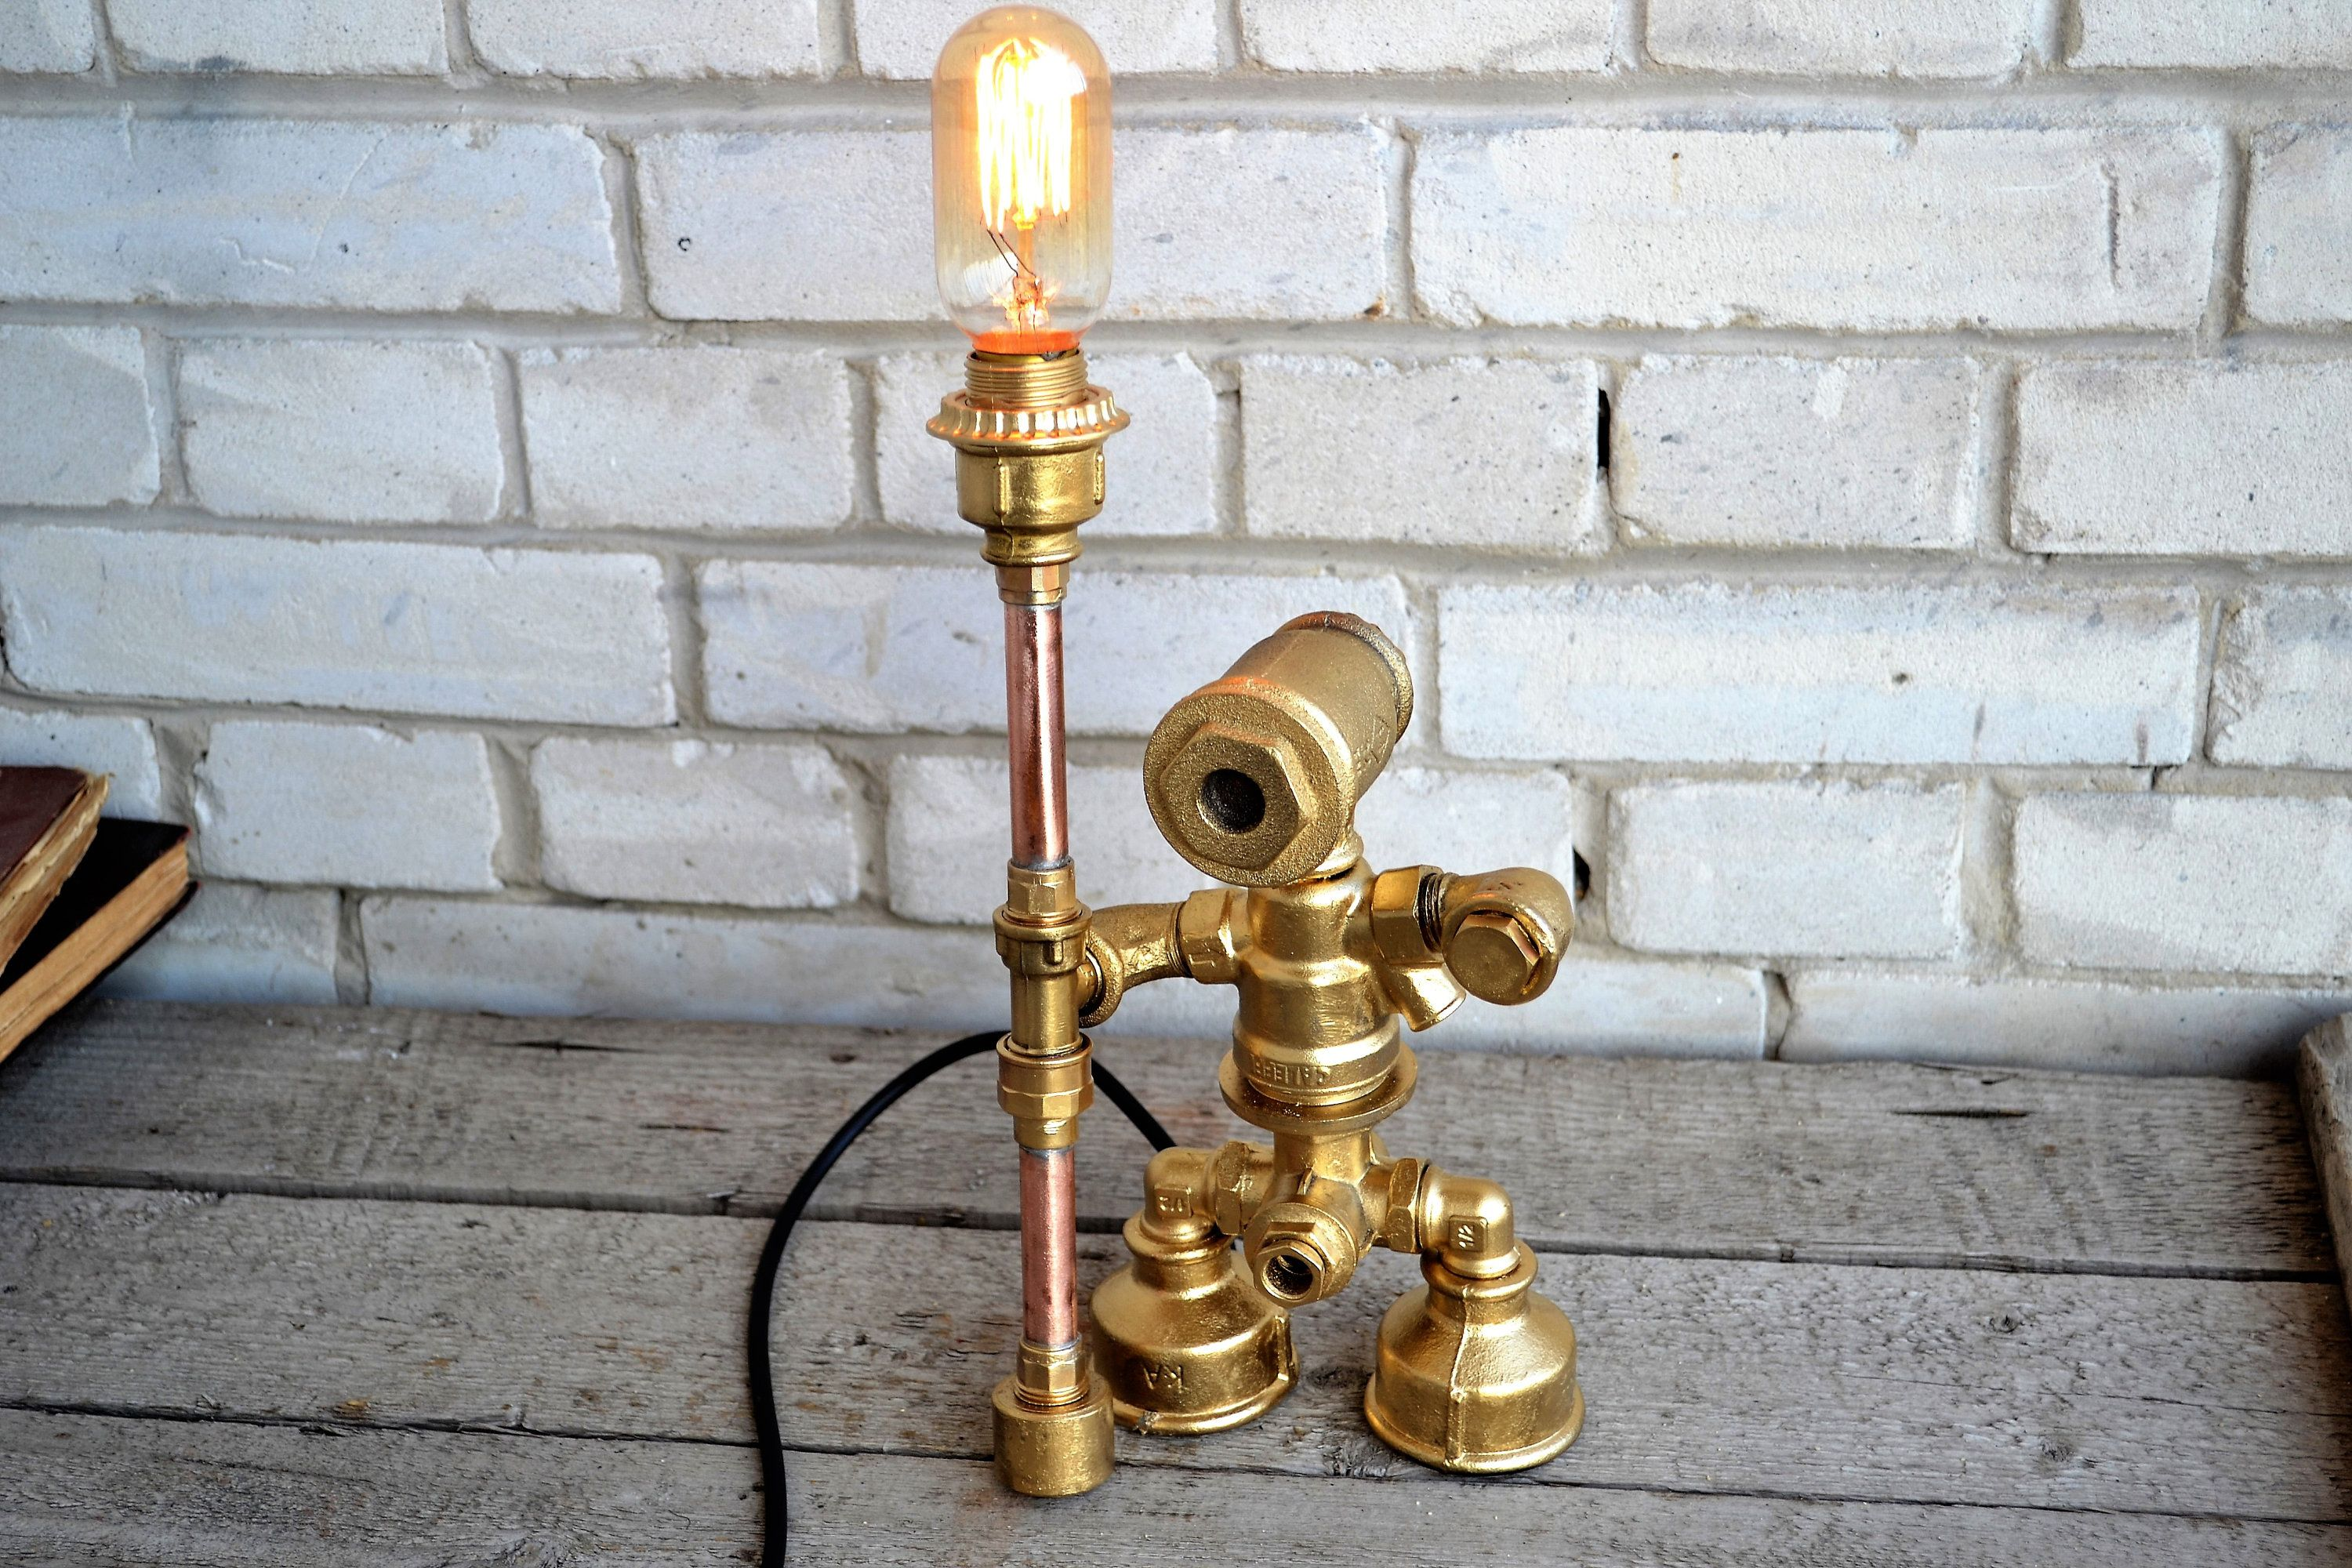 Robot Lamp Steampunk Table Lamp Industrial Lighting Human Shaped Night Light Gift To A Man Rustic Lamp With Edison Bu Lamp Steampunk Table Lamp Robot Lamp